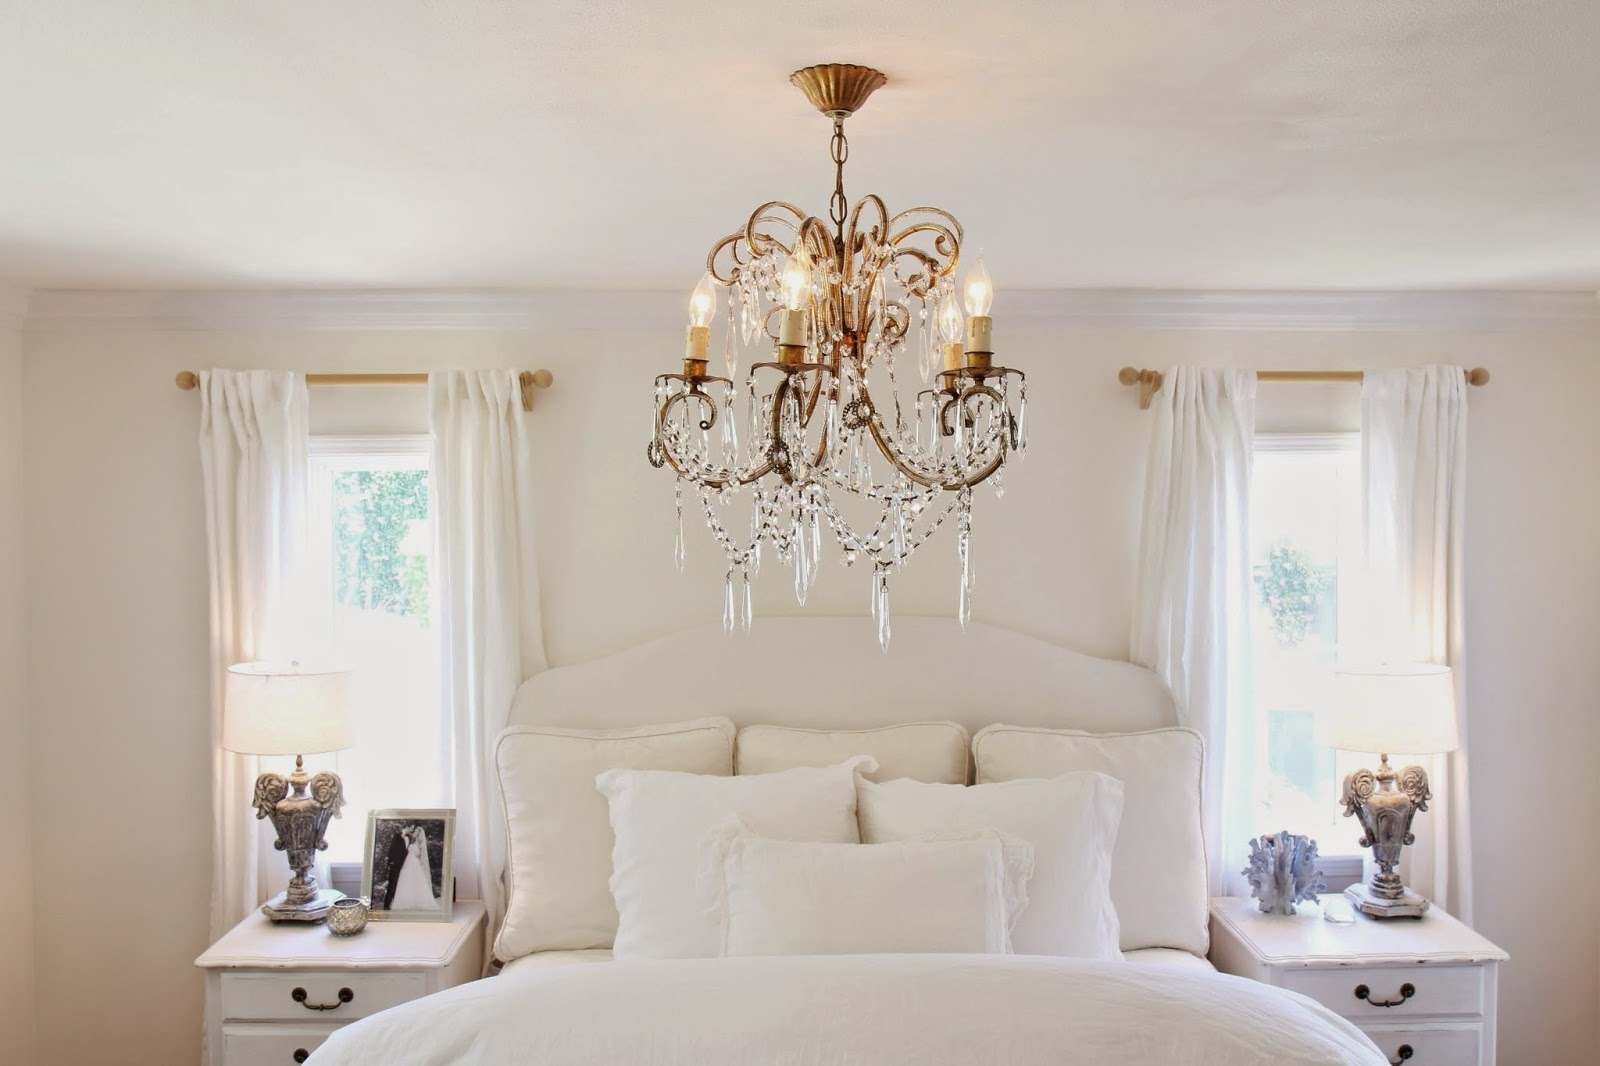 Chandeliers In The Bedroom For Most Recently Released Nora's Nest: A Chandelier For The Master Bedroom (View 4 of 20)